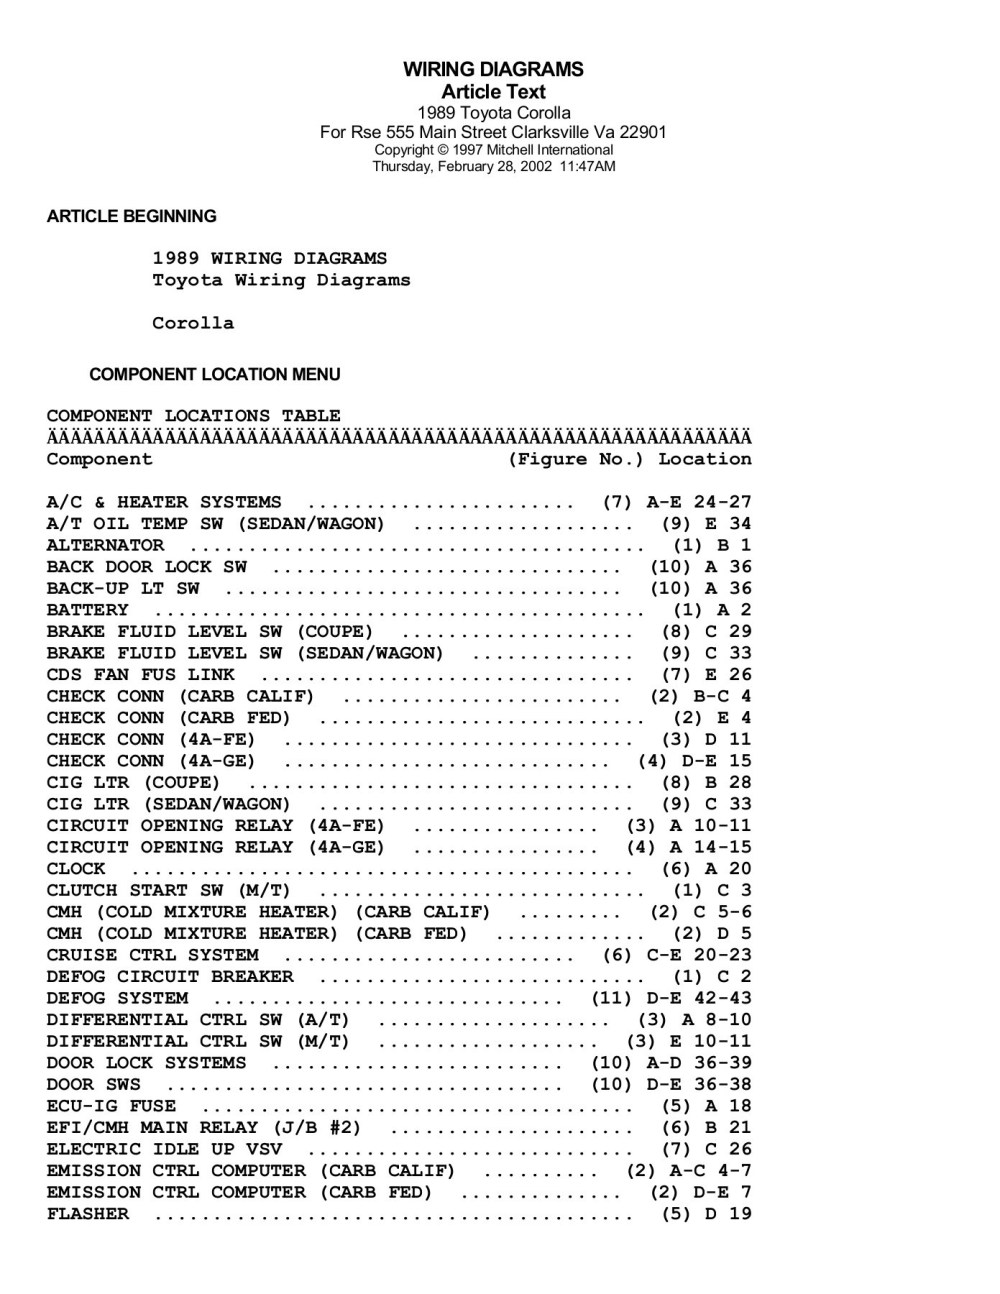 medium resolution of wiring diagrams article text 1989 toyota corolla for rse pages 1 14 text version fliphtml5